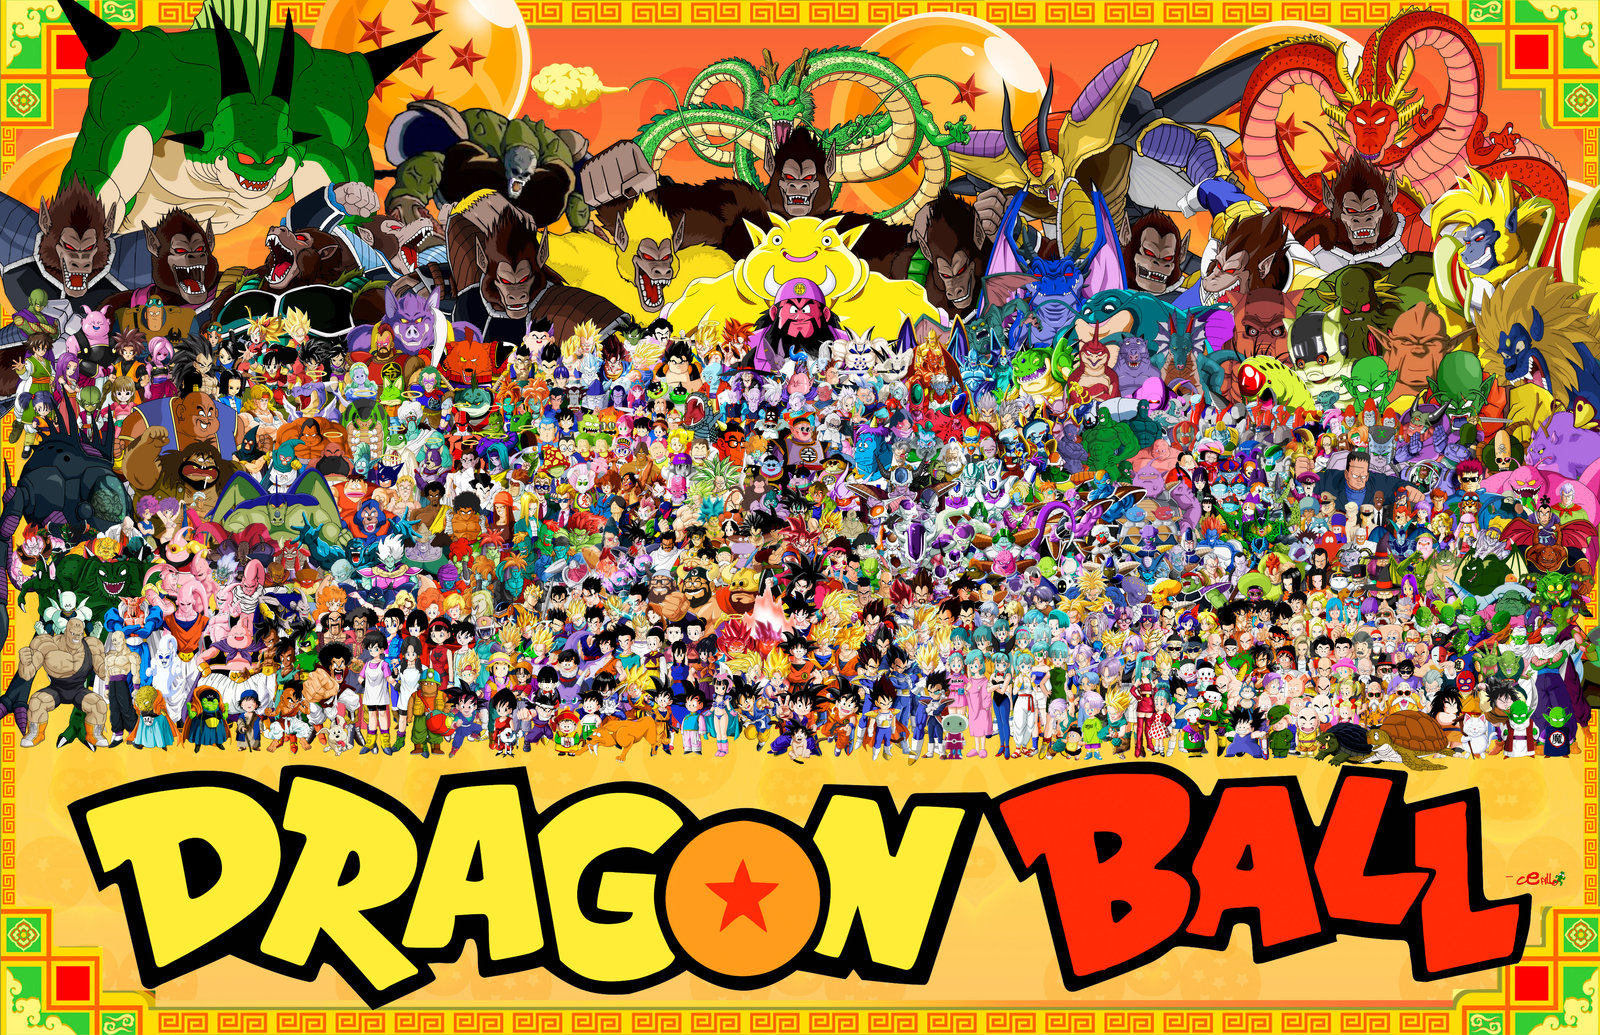 dragon ball universe wallpaper by cepillo16 fan art wallpaper movies 1600x1035